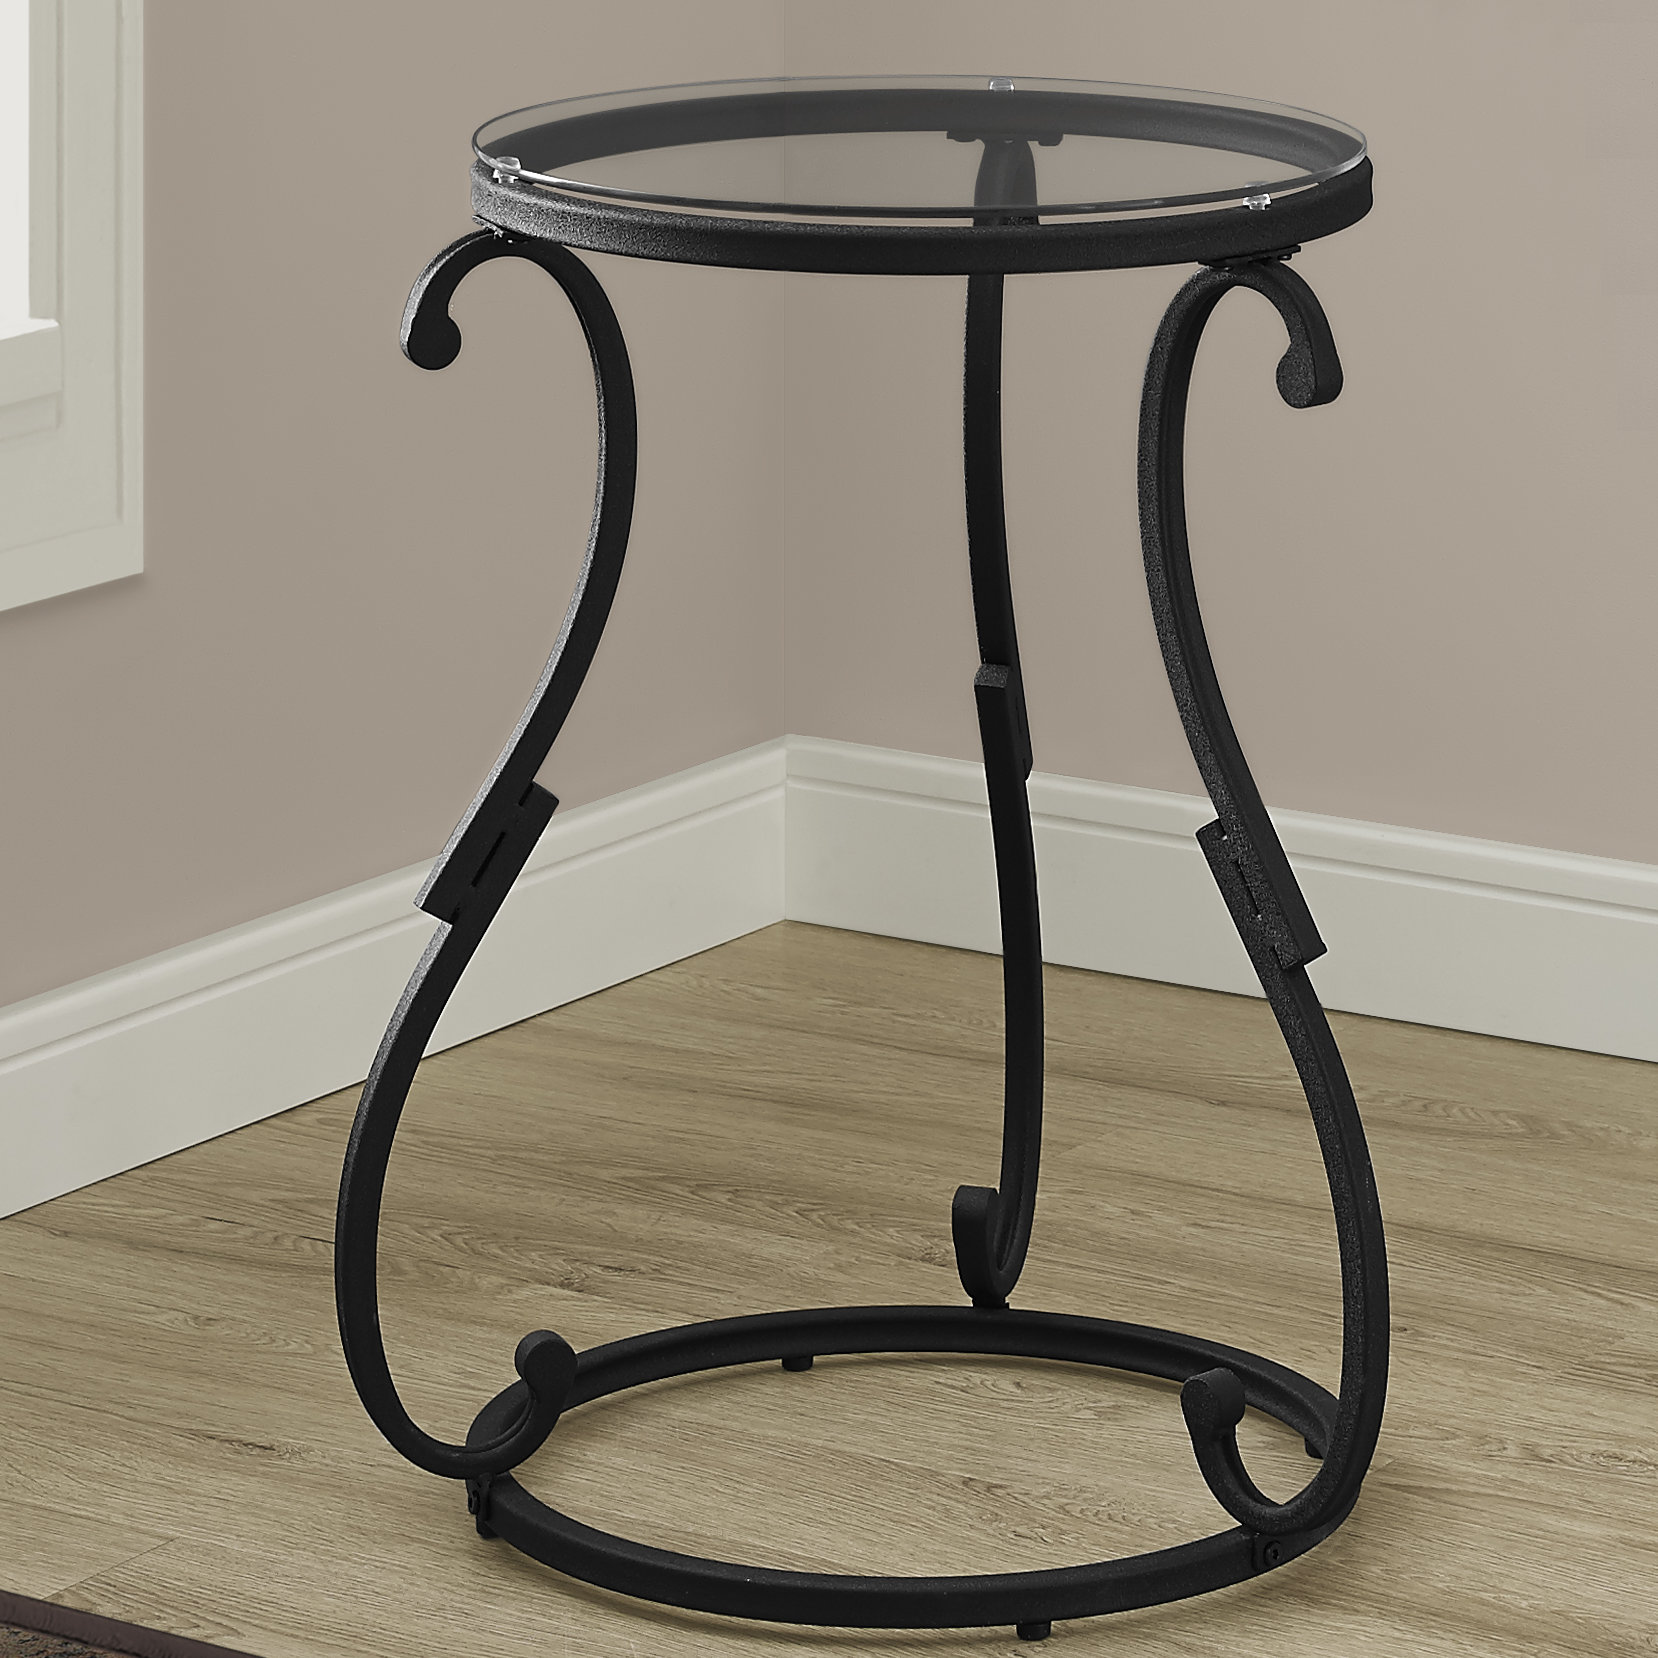 monarch specialties inc hammered black metal end table reviews with glass top golden oak furniture mfg oval shape wood legs pipe stool rustic french country coffee west elm desk